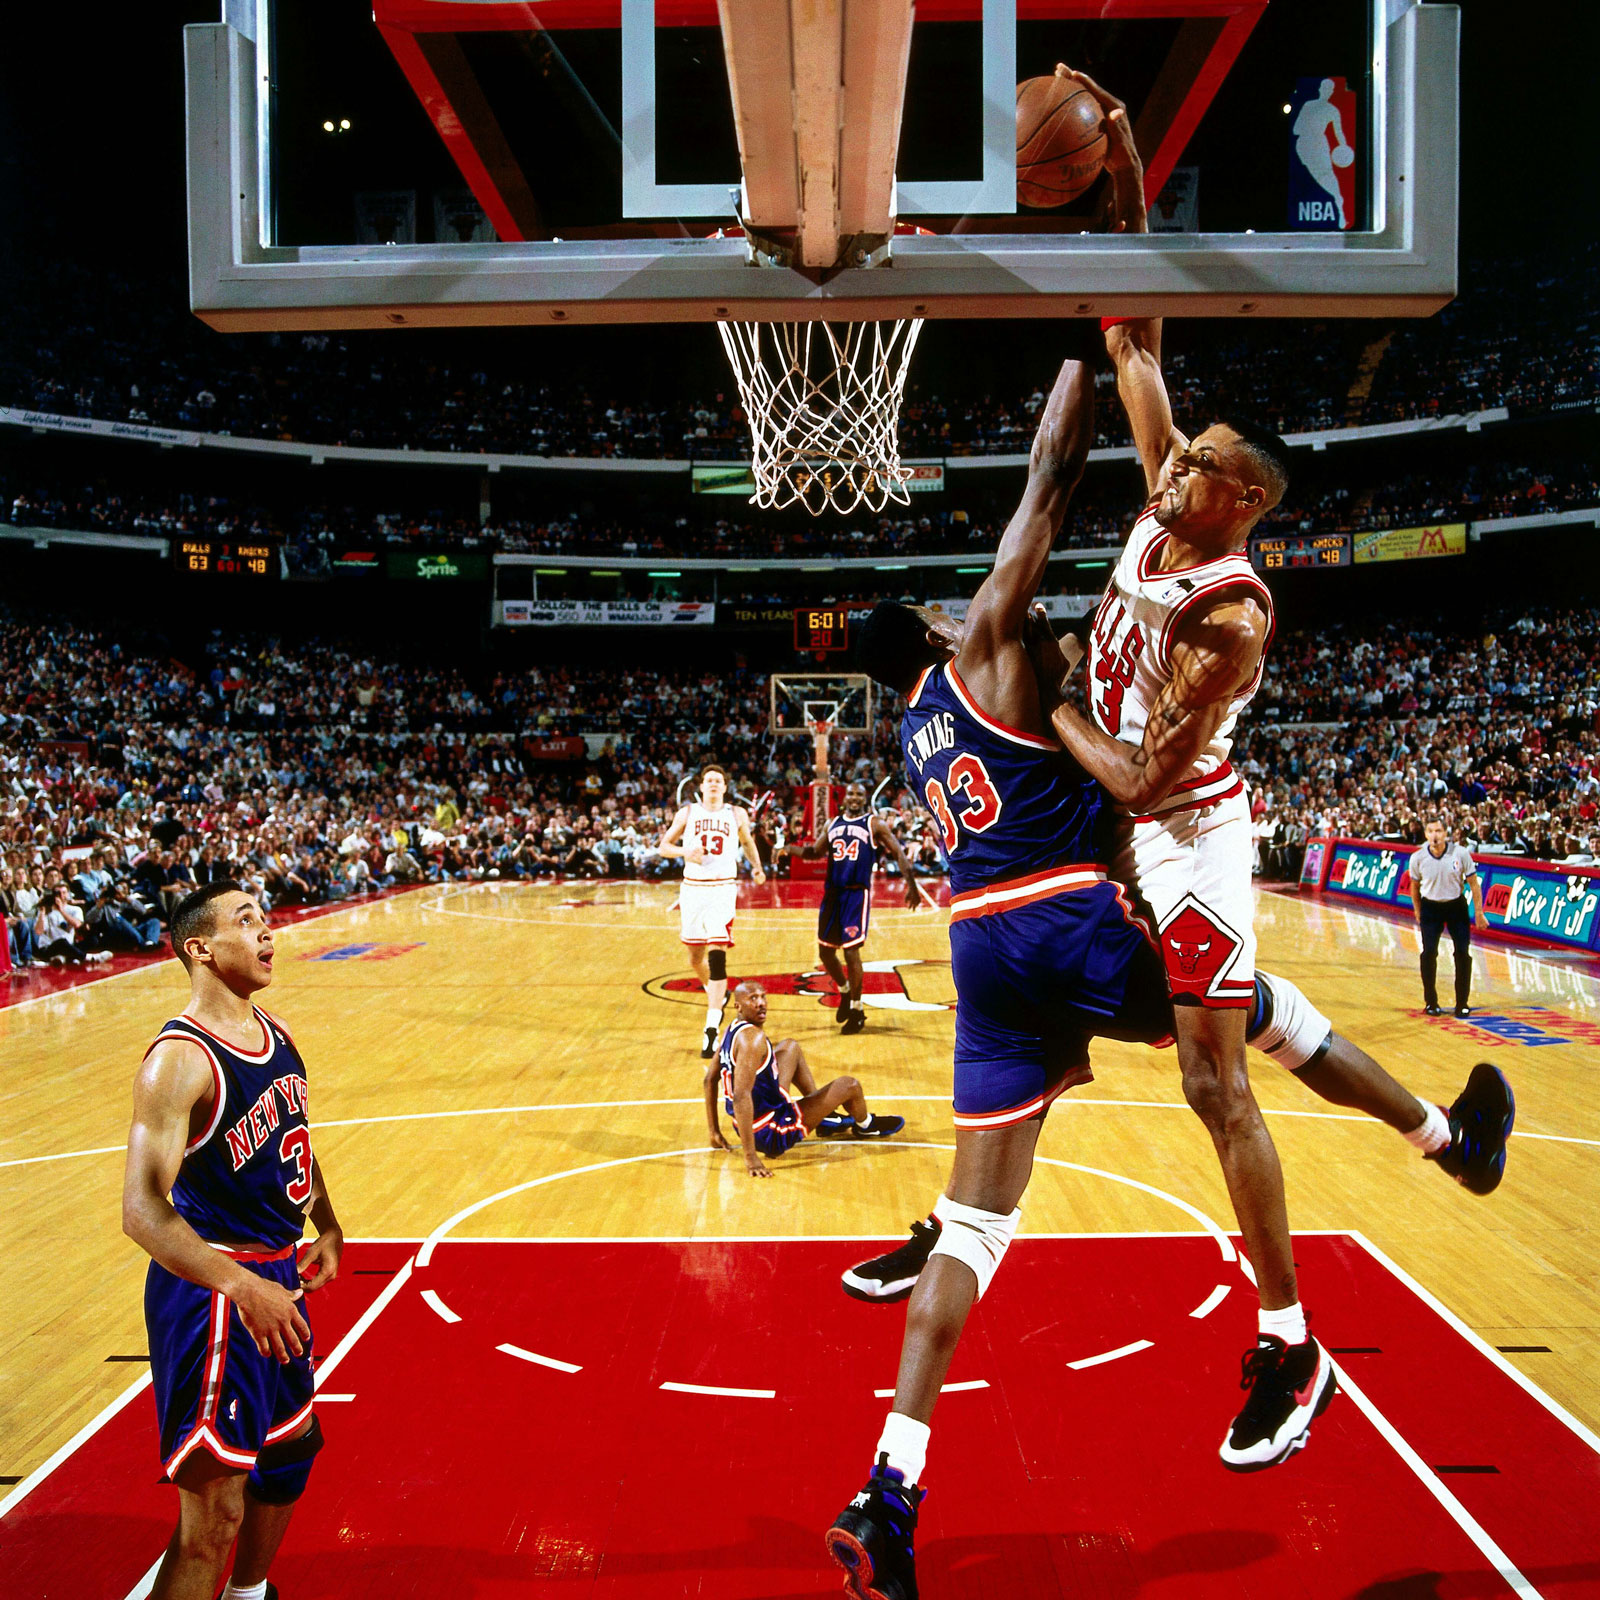 Pippen soars through the air and puts a poster on Patrick Ewing